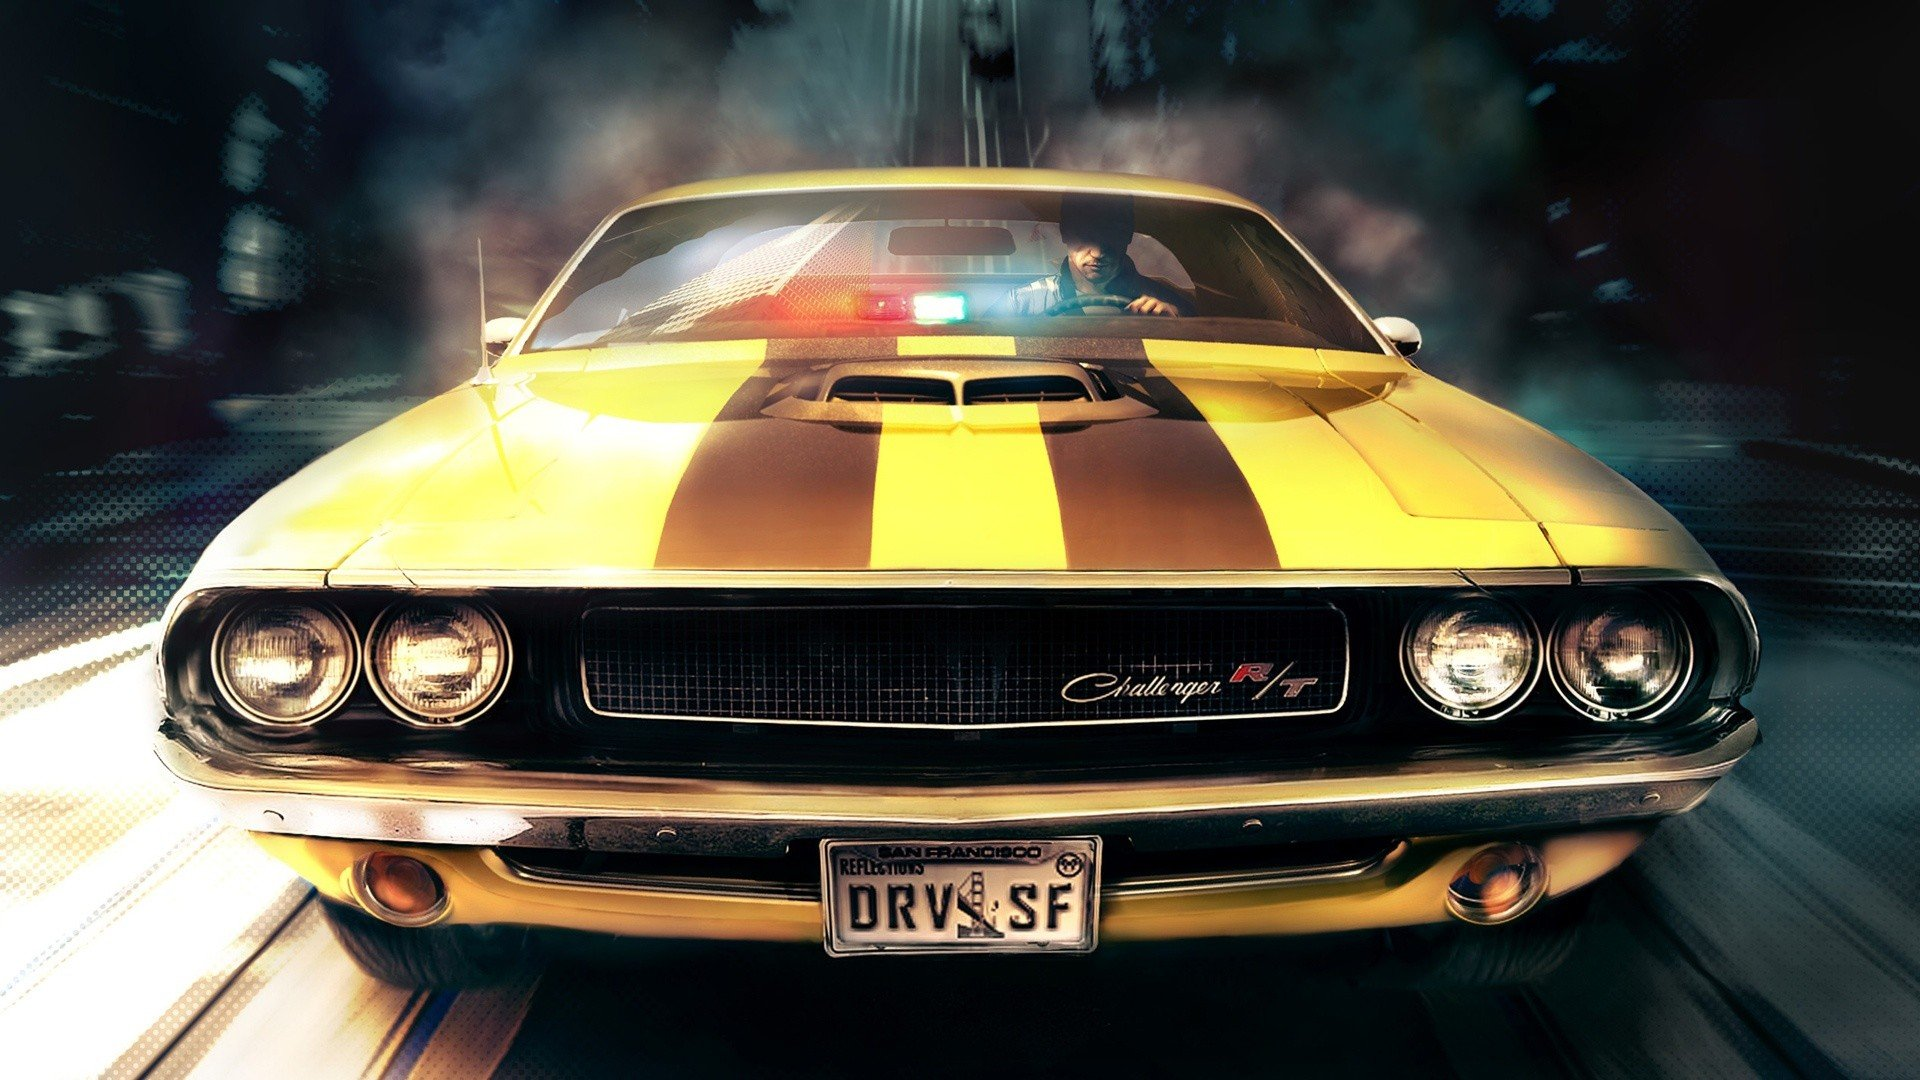 Cars Muscle Wallpaper 1920x1080 Cars Muscle Cars San Francisco 1920x1080